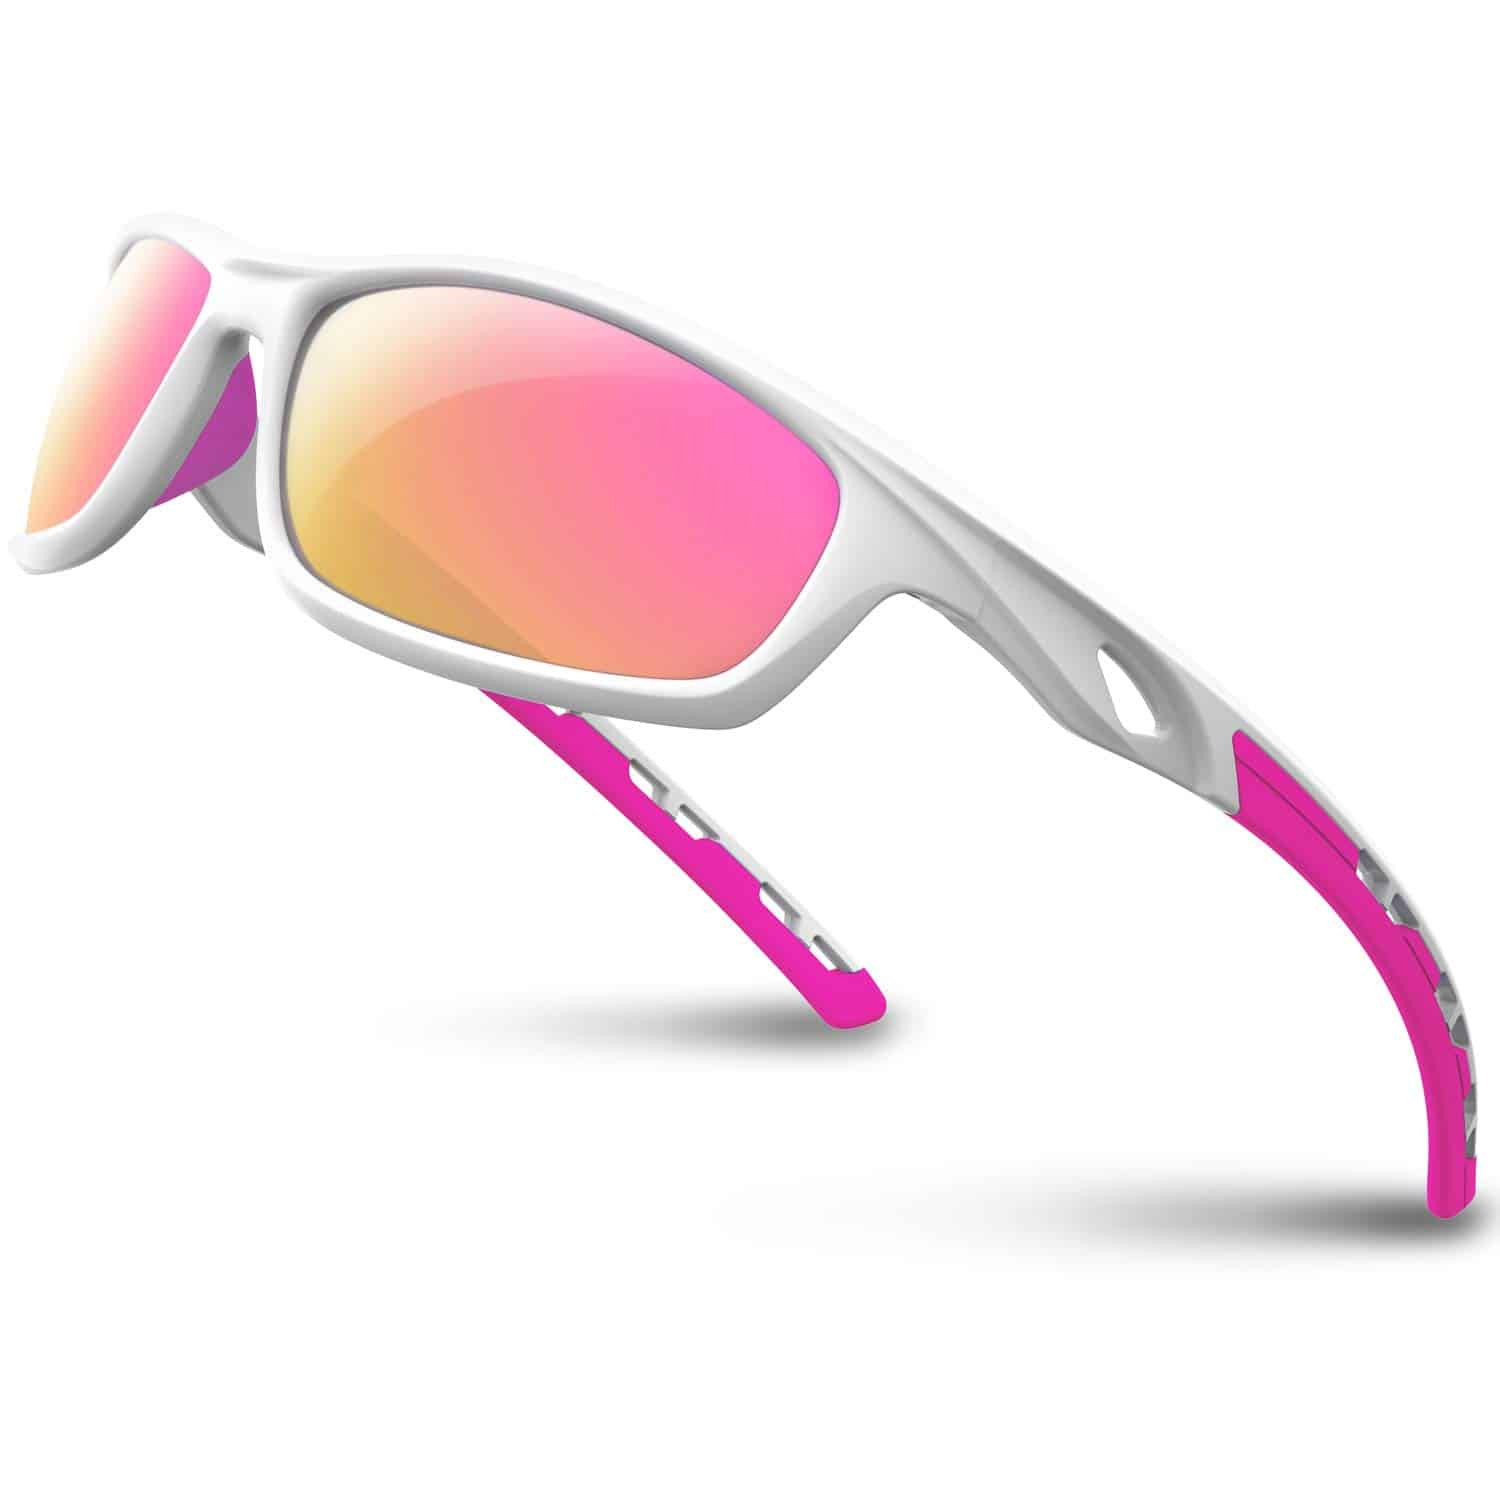 2eda488d8f96 Top 10 Best Sunglasses For Women in 2019